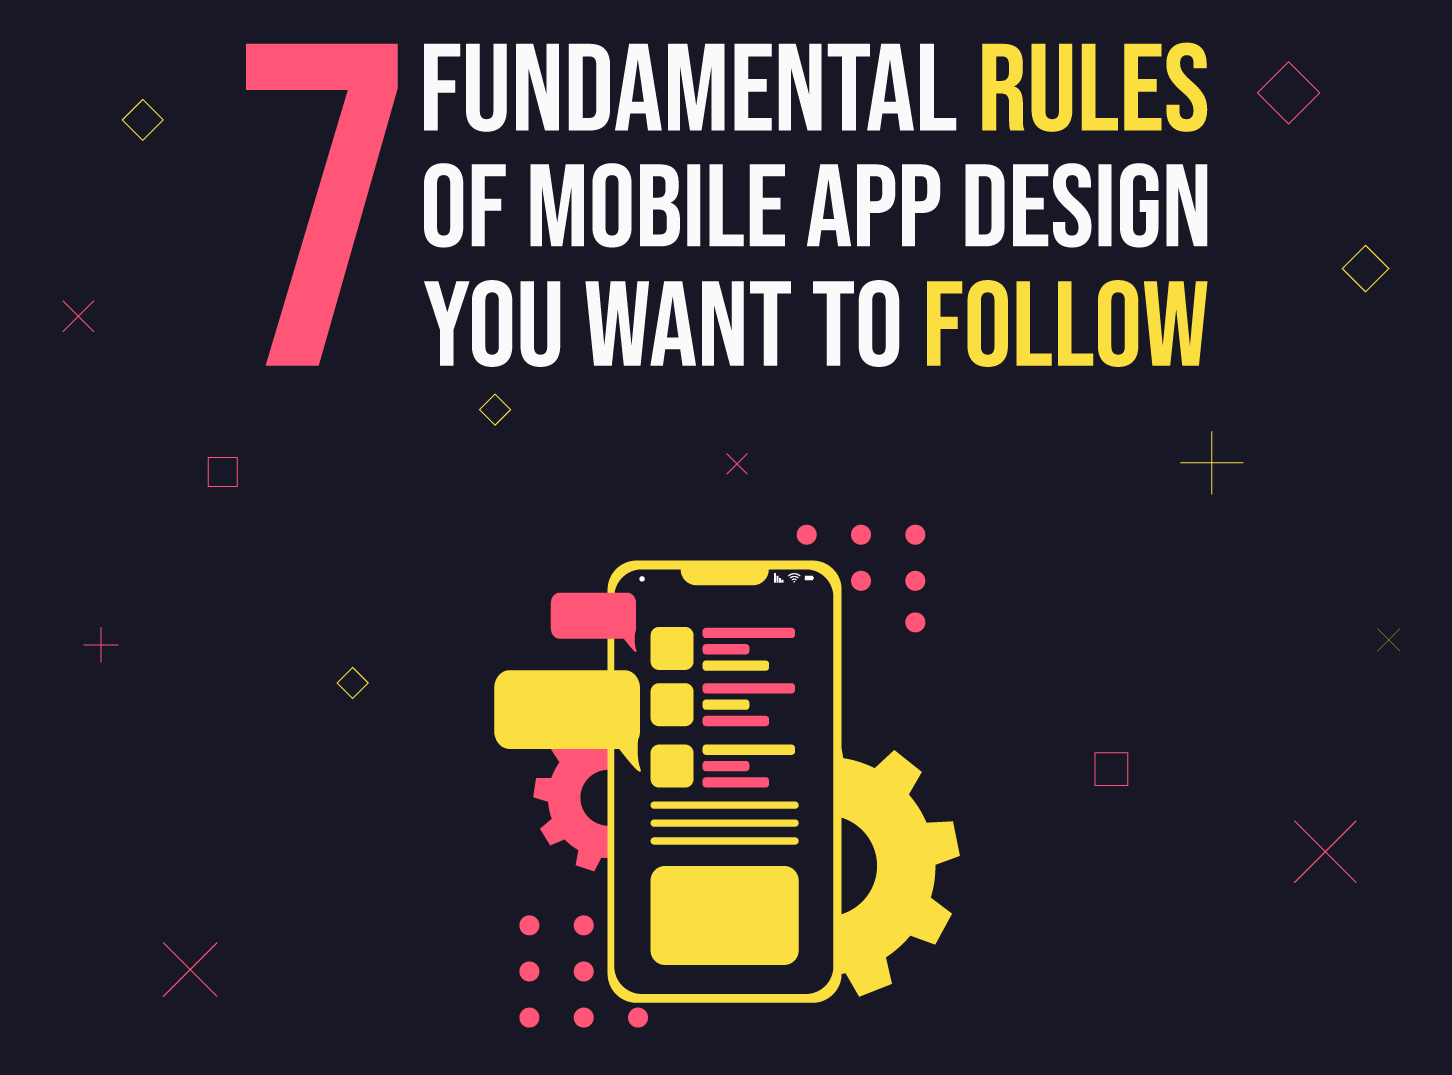 7 Fundamental rules of mobile app design that you need to follow by Inkyy Web Design & Development Studio